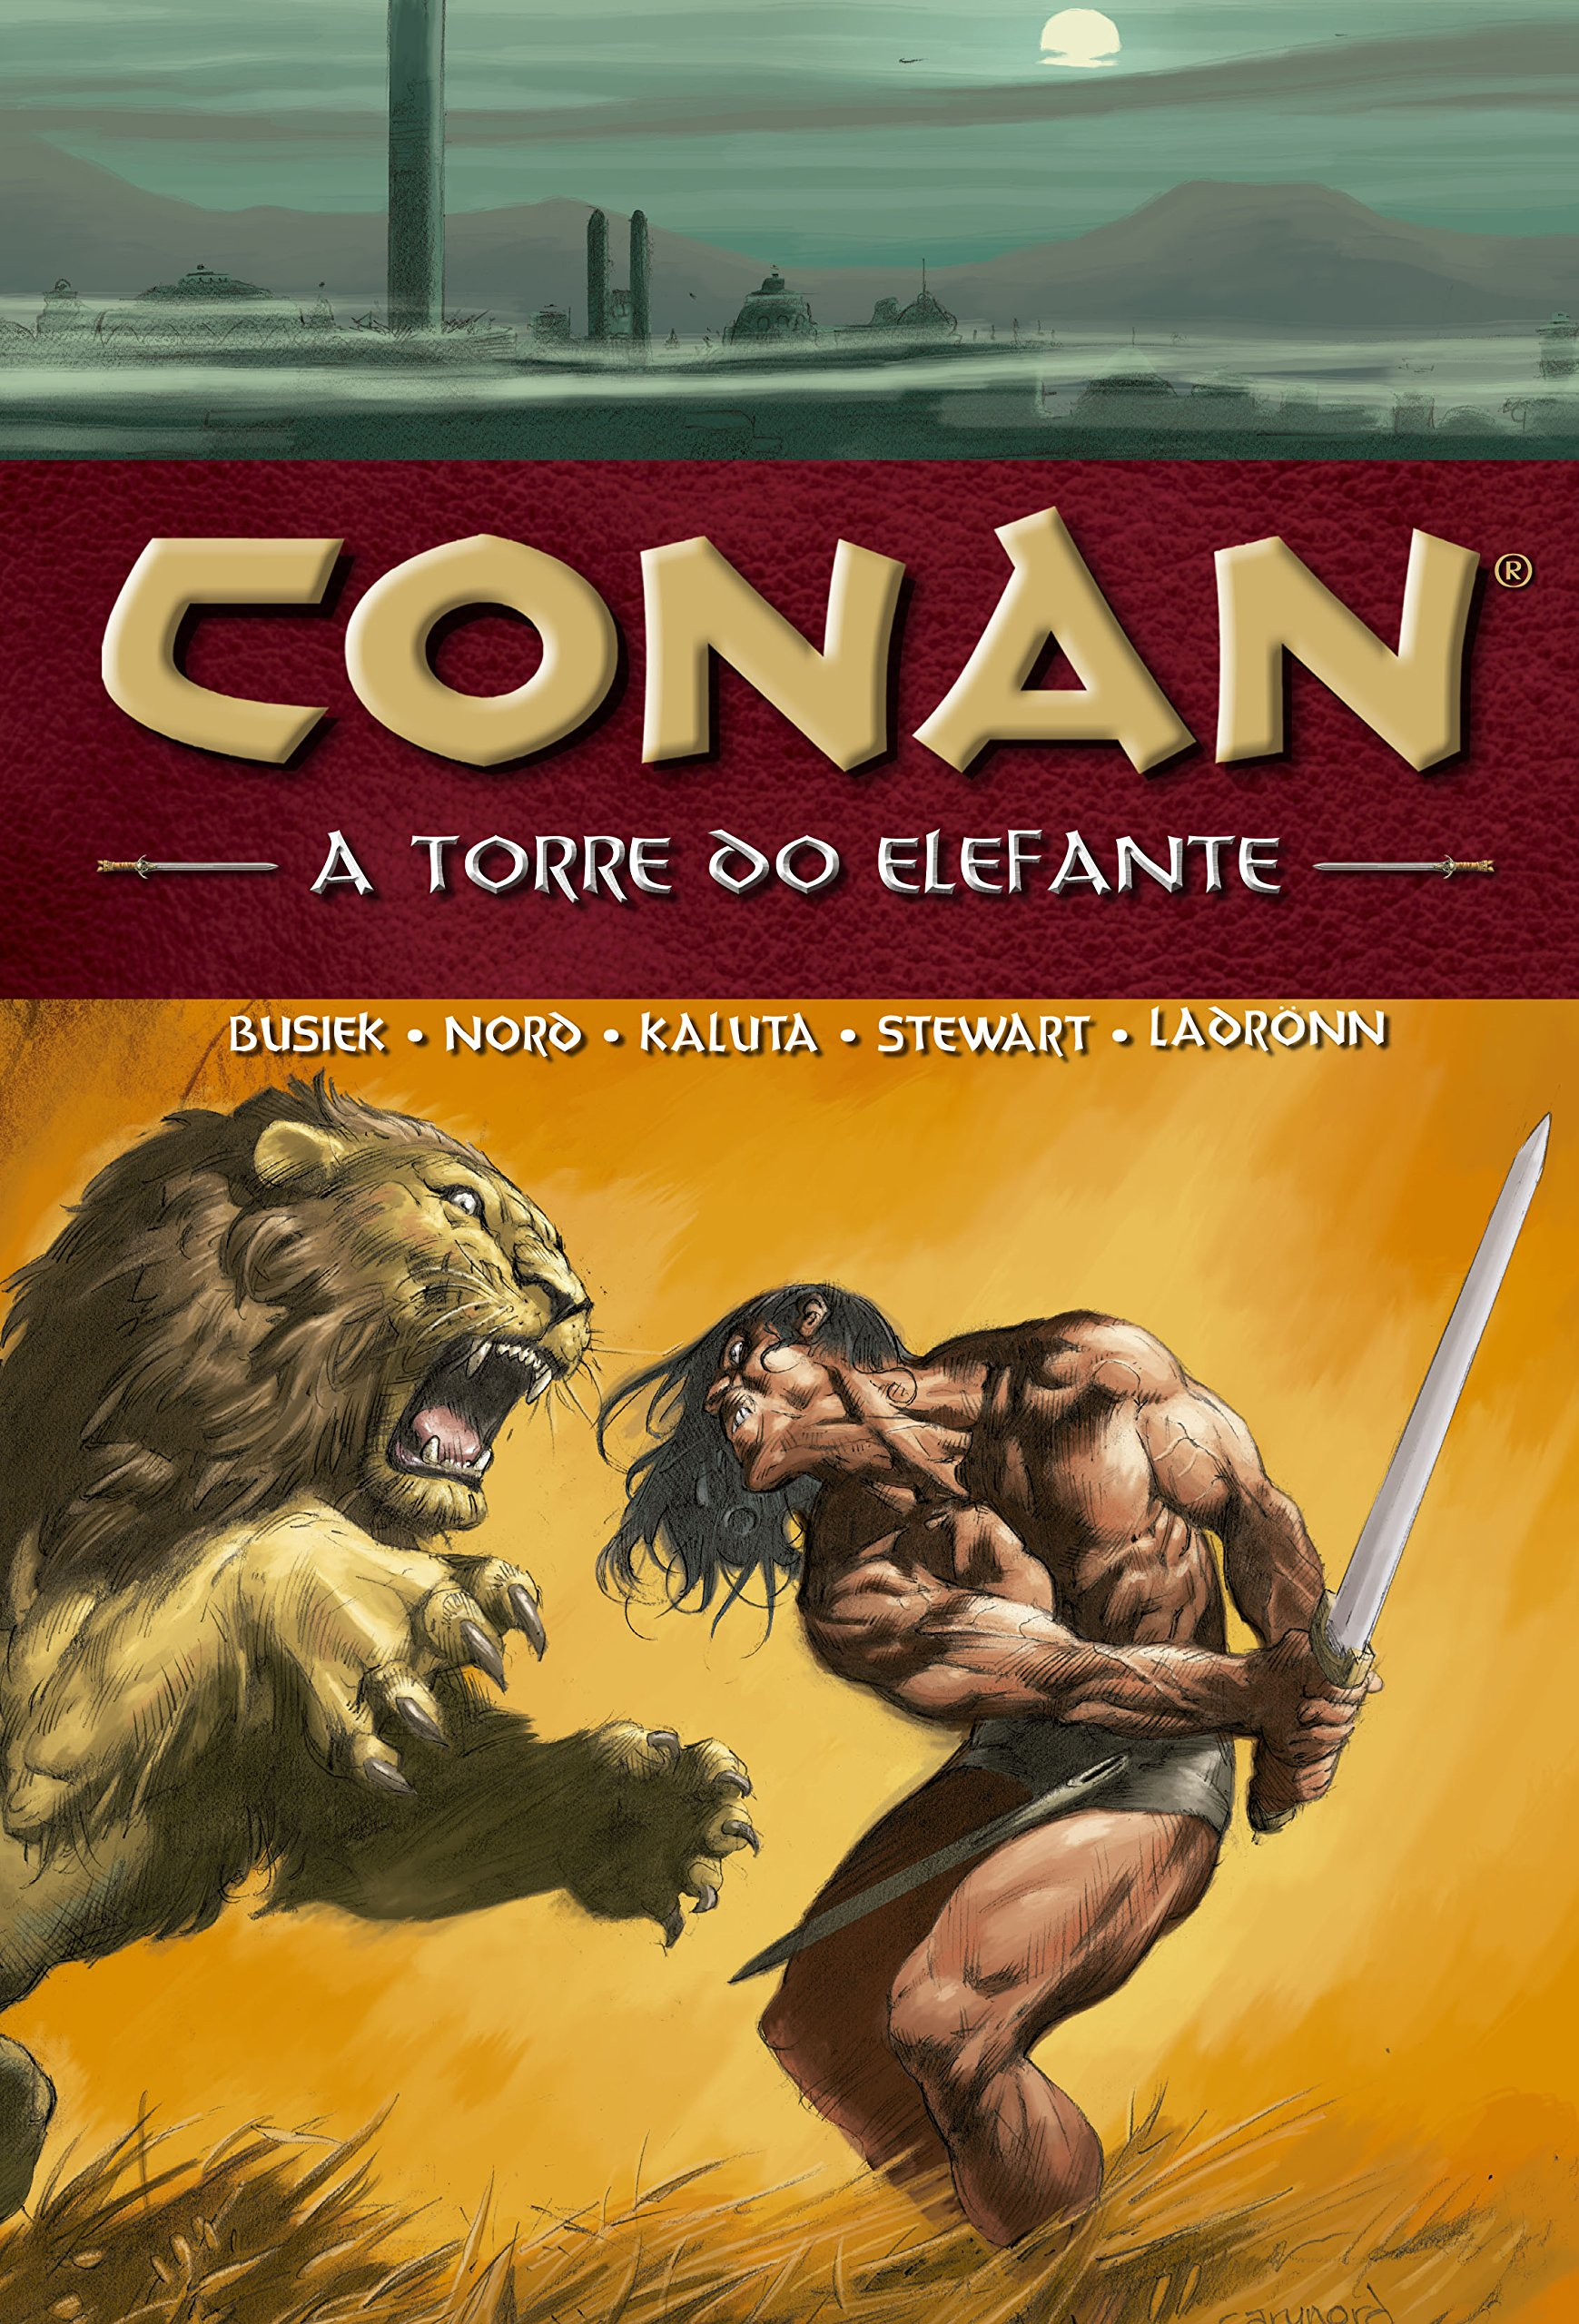 CONAN VOL. 03 - A TORRE DO ELEFANTE